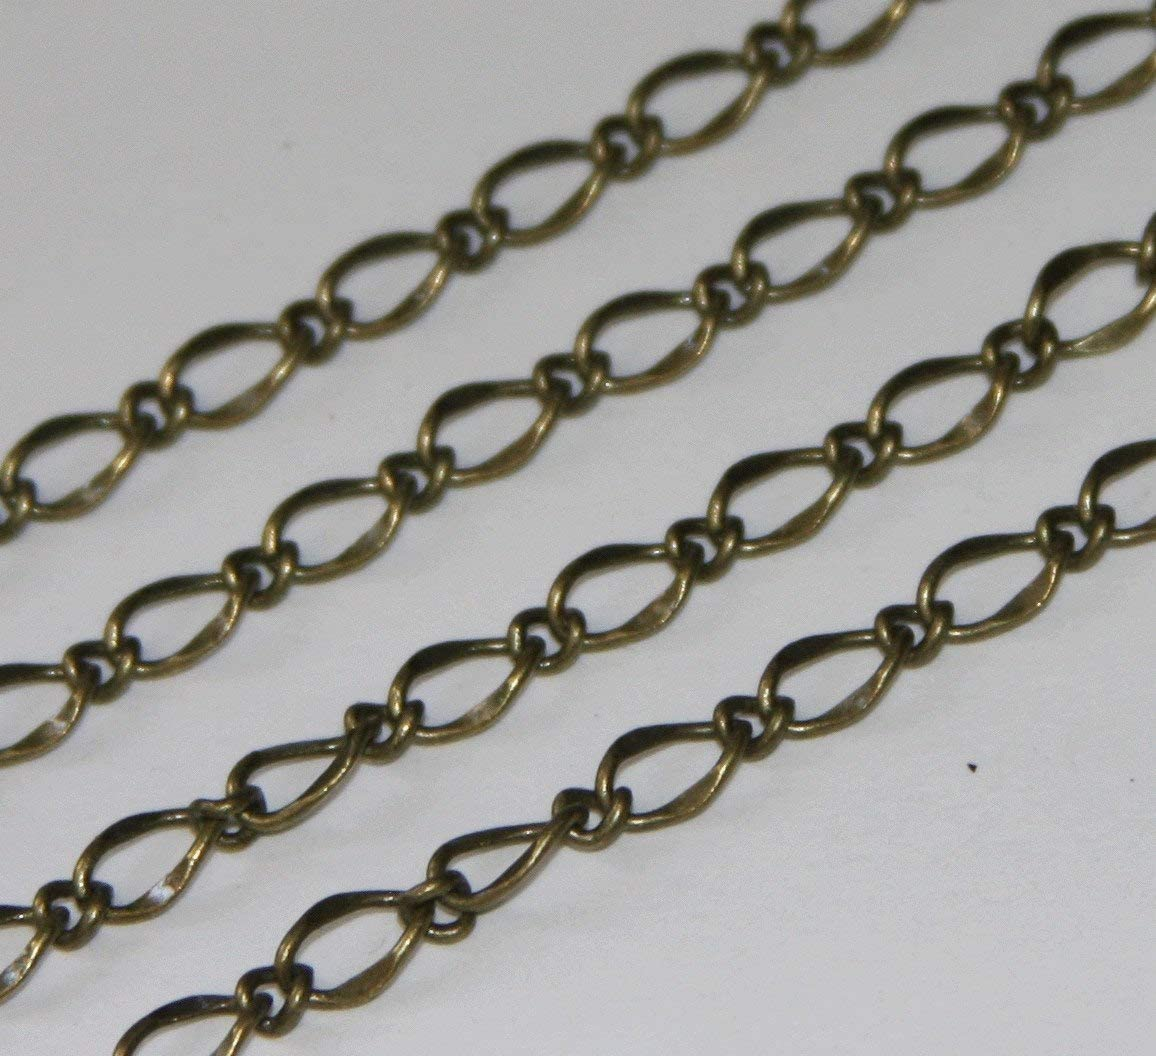 10 ft Ranking integrated 1st place of Antiqued Brass Hammered 5X8mm Link Chain latest soldered Links